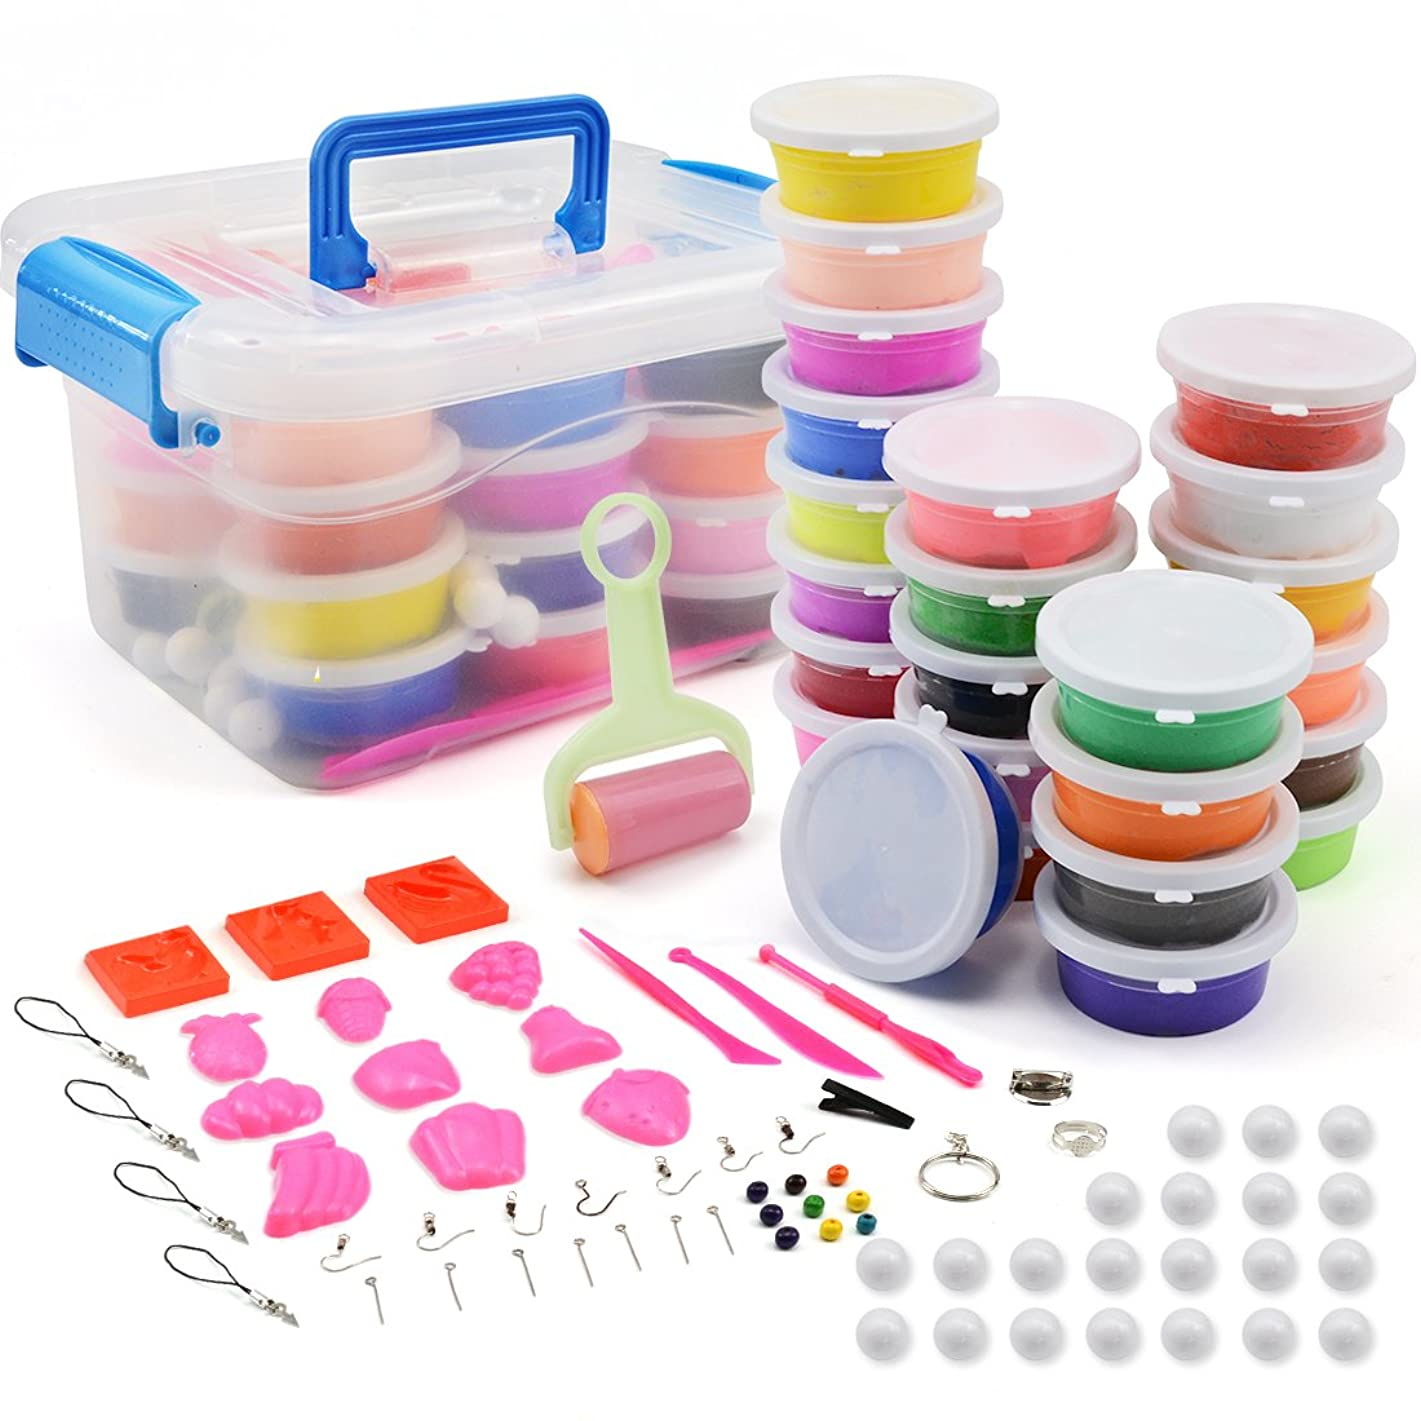 24 Colors Air Dry Soft Clay, Ultra Light Modeling Clay Set, Colorful DIY Slime Creative Craft Clay Kit, w/Storage Box, Tools and Accessories